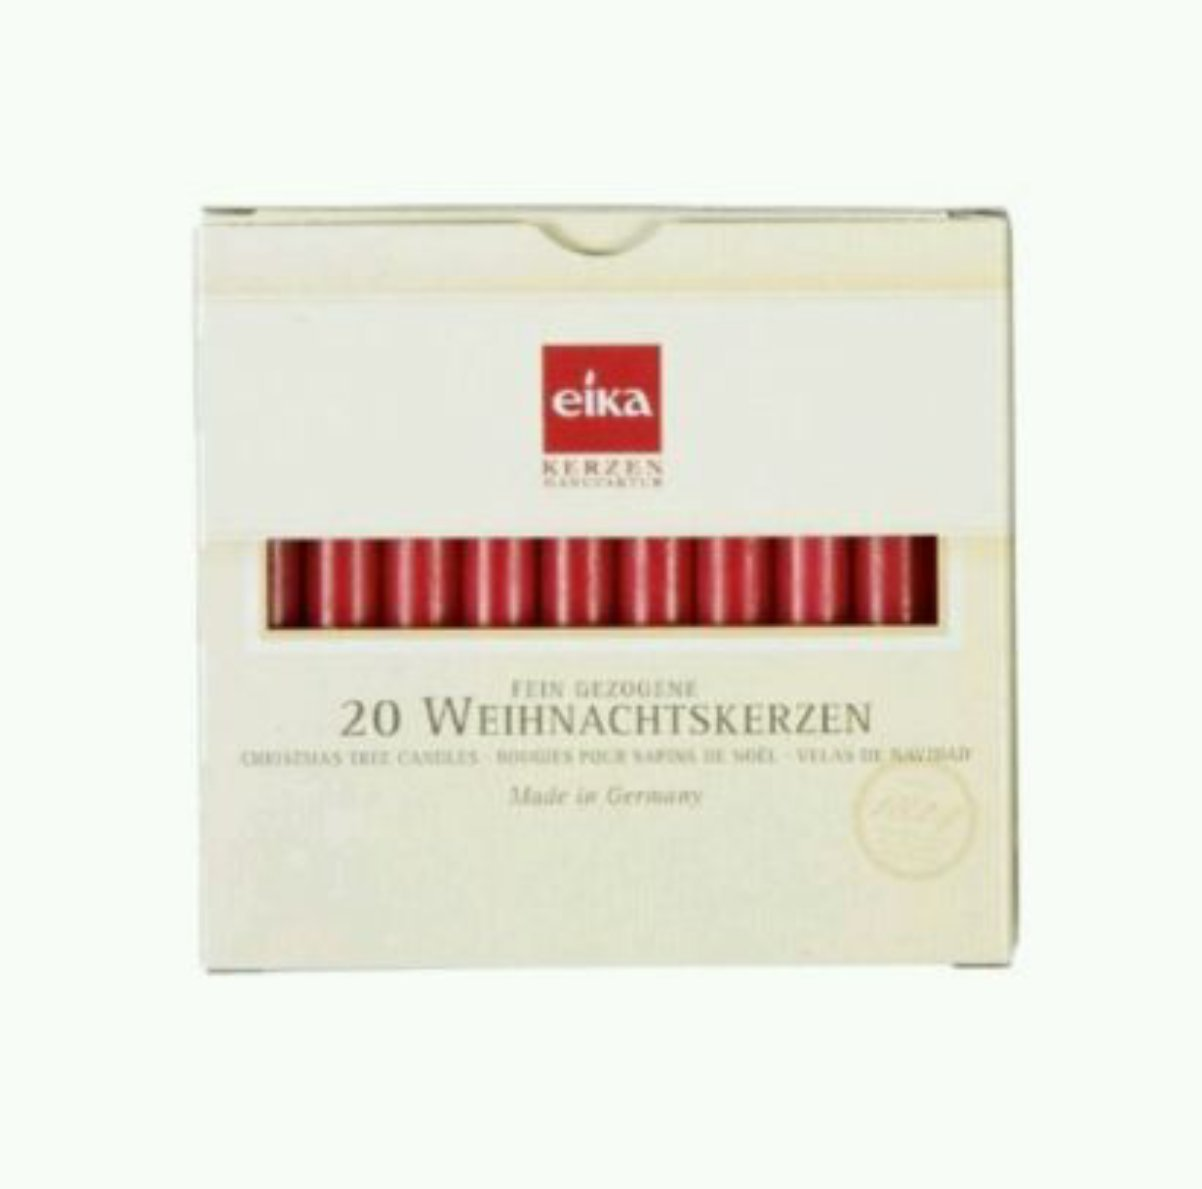 Eika red chime candles